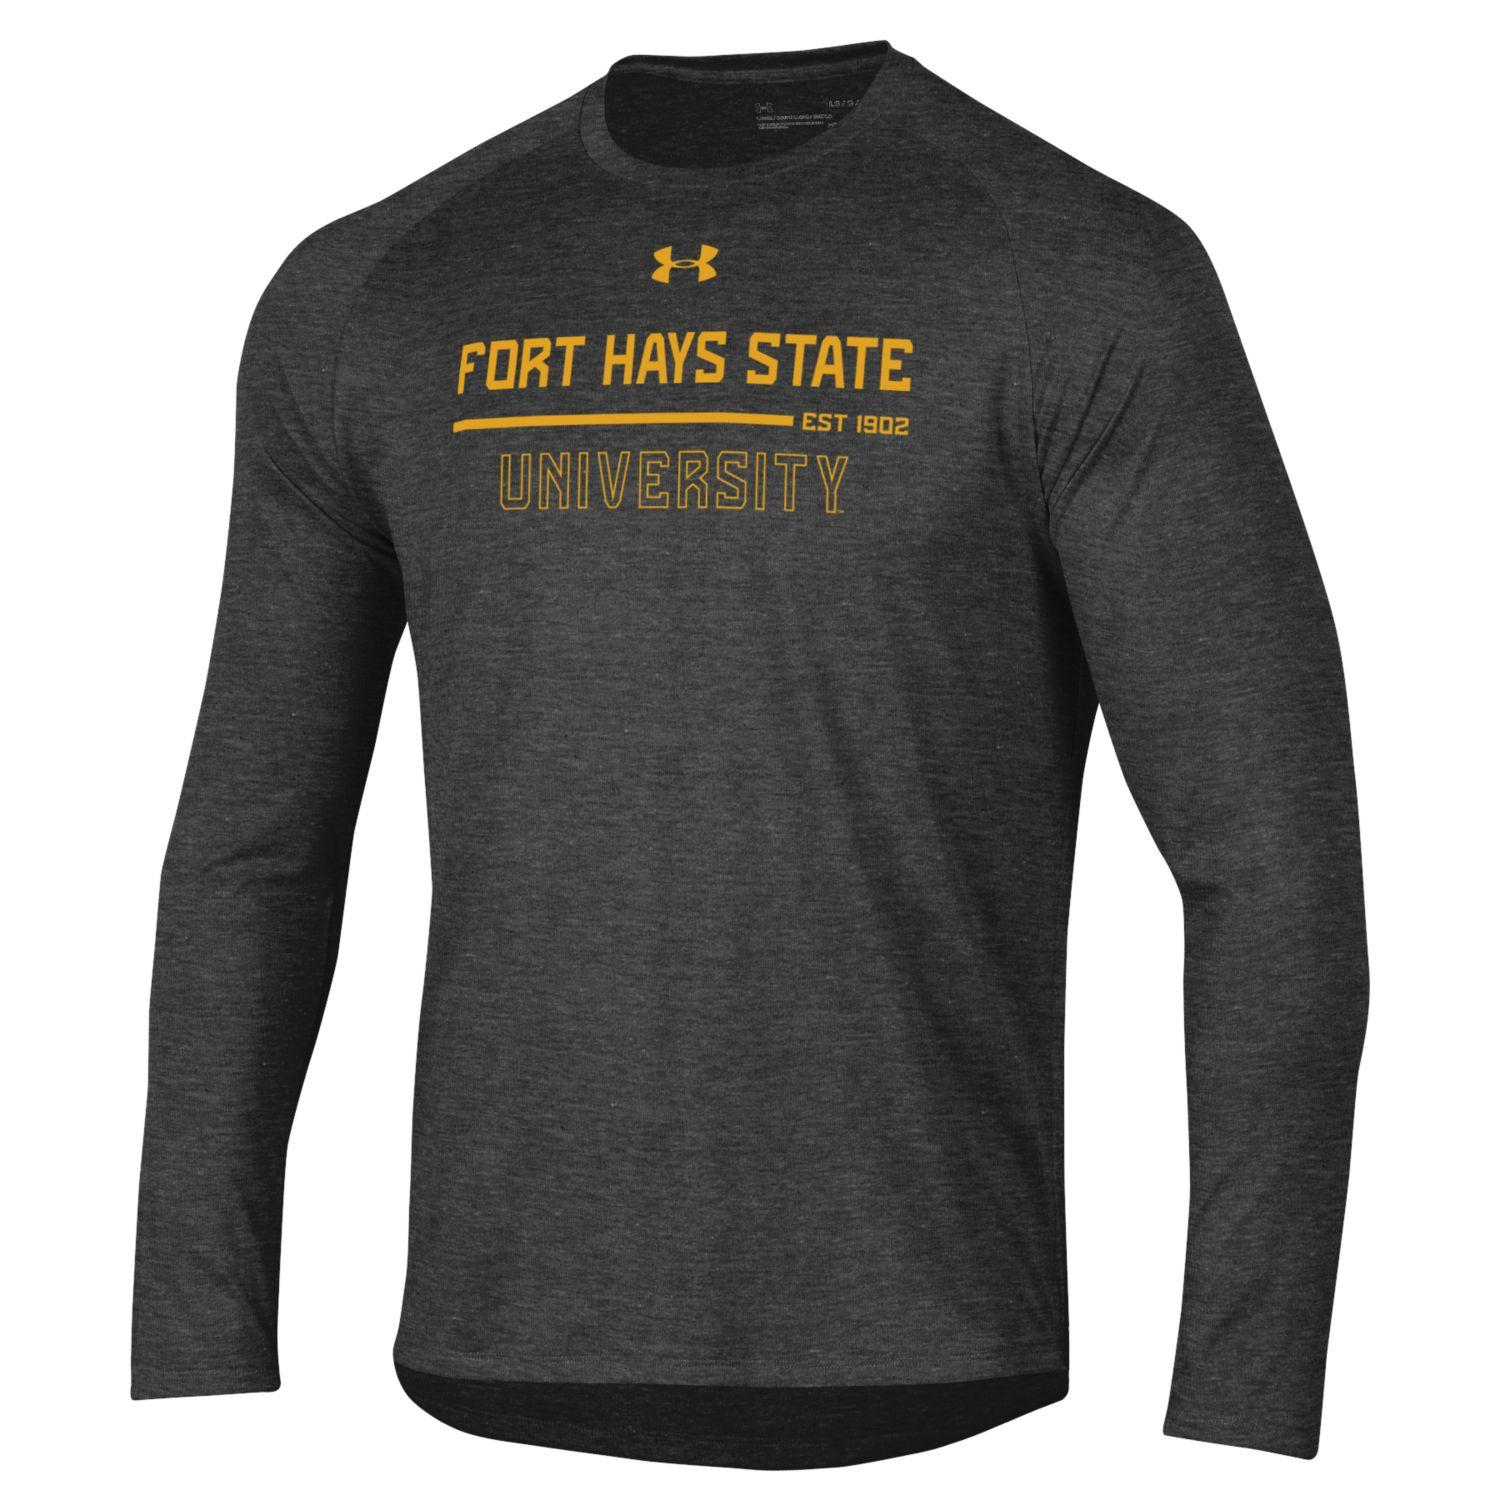 Image for the Fort Hays State University 1902 Tech Long Sleeve Tee, Carbon Heather, Under Armour product